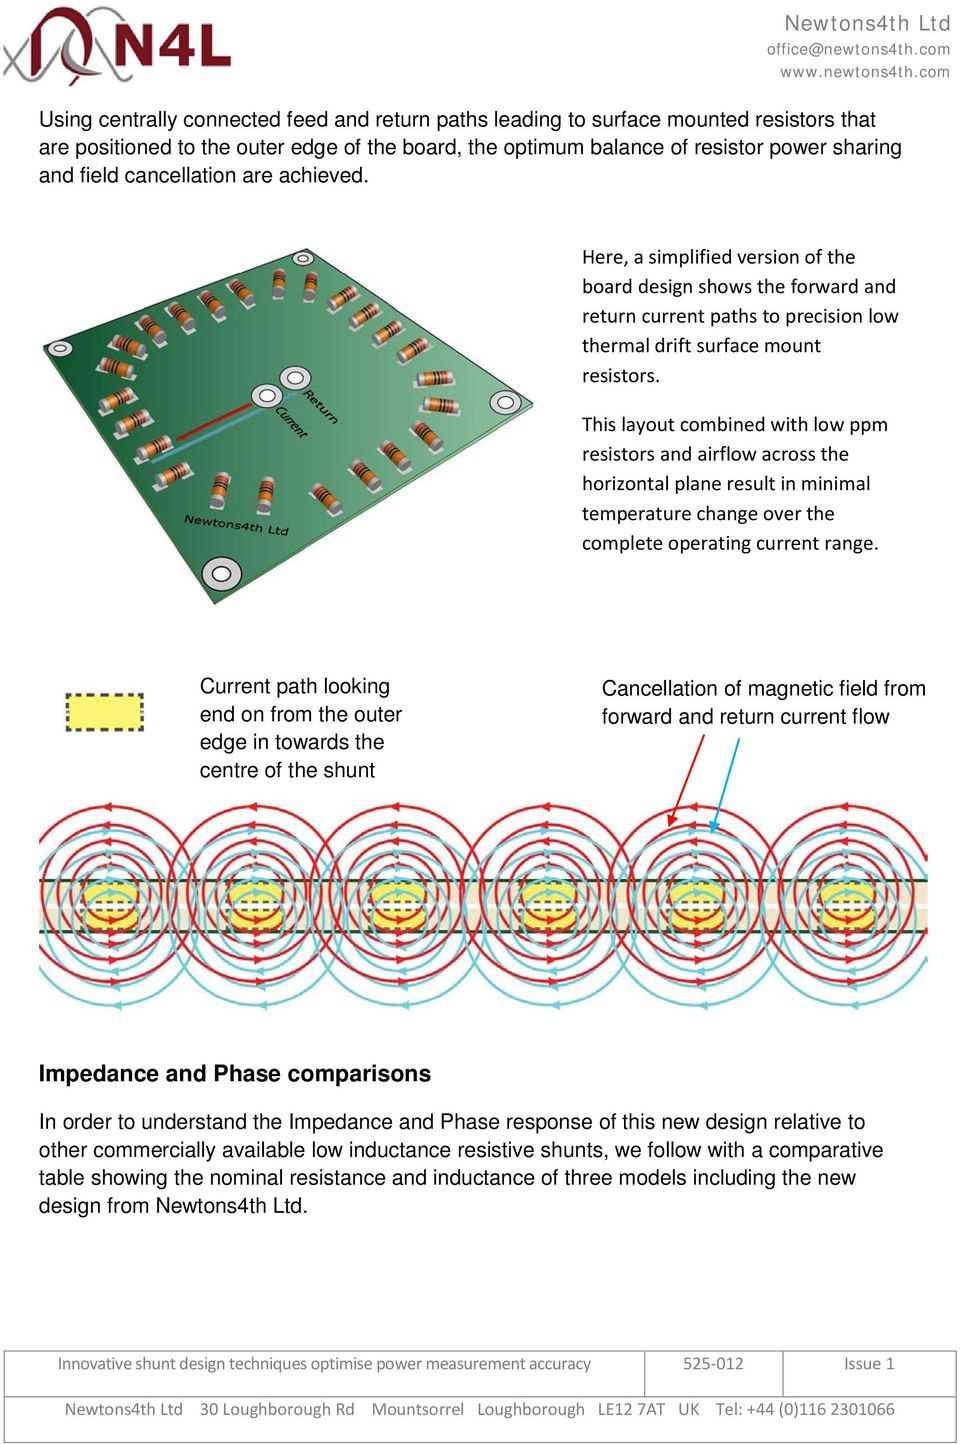 This layout combined with low ppm resistors and airflow across the horizontal plane result in minimal temperature change over the complete operating current range.